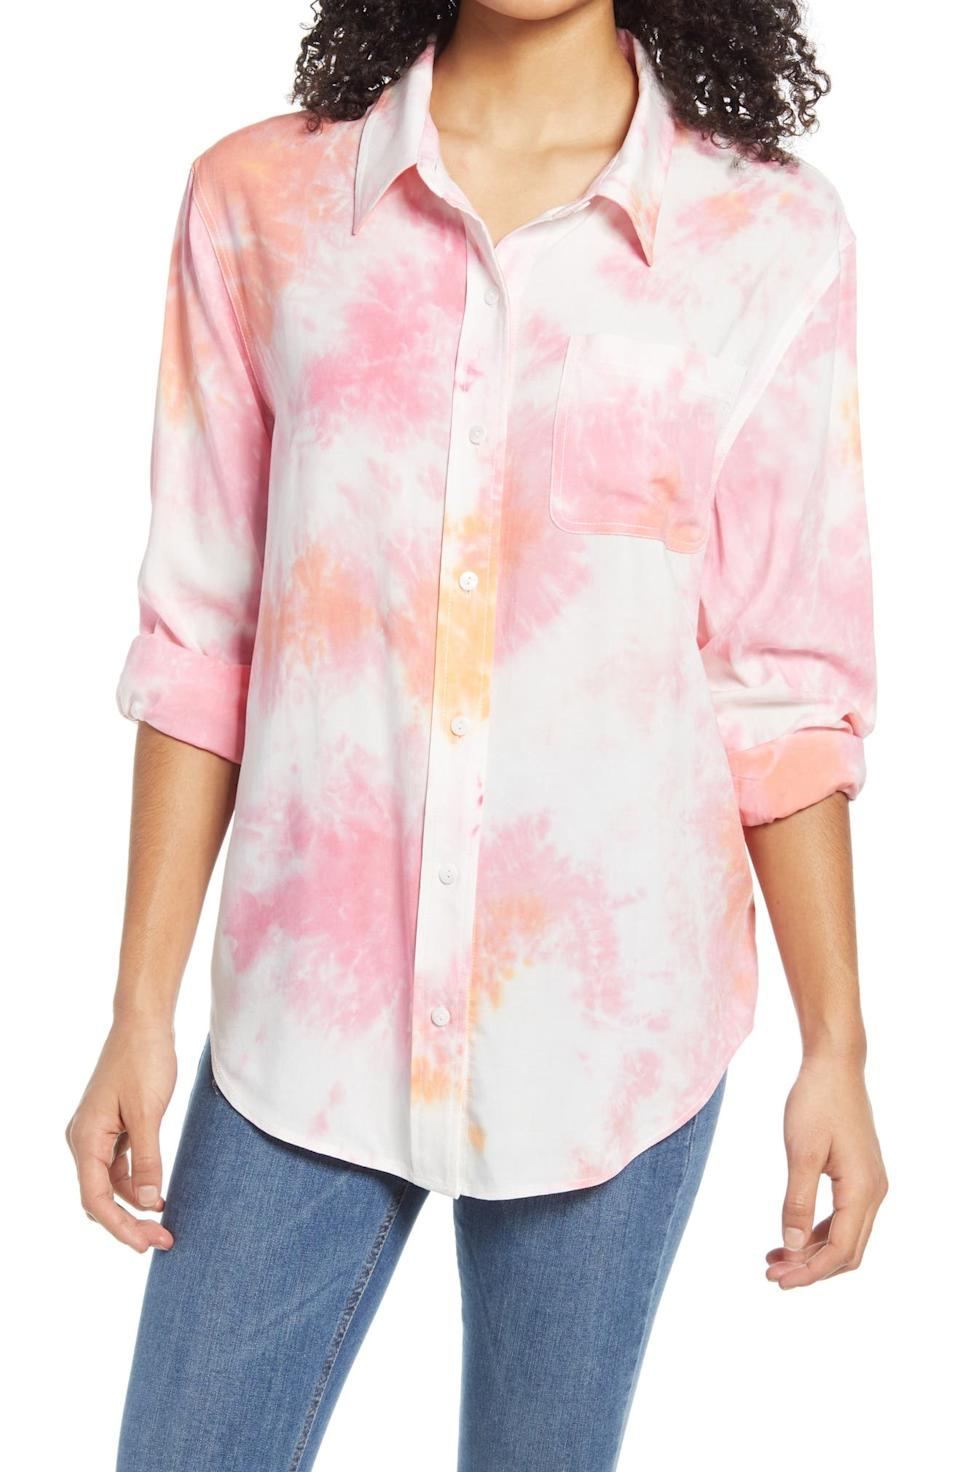 BP. L.A. Tie Dye Tunic Top. Image via Nordstrom.